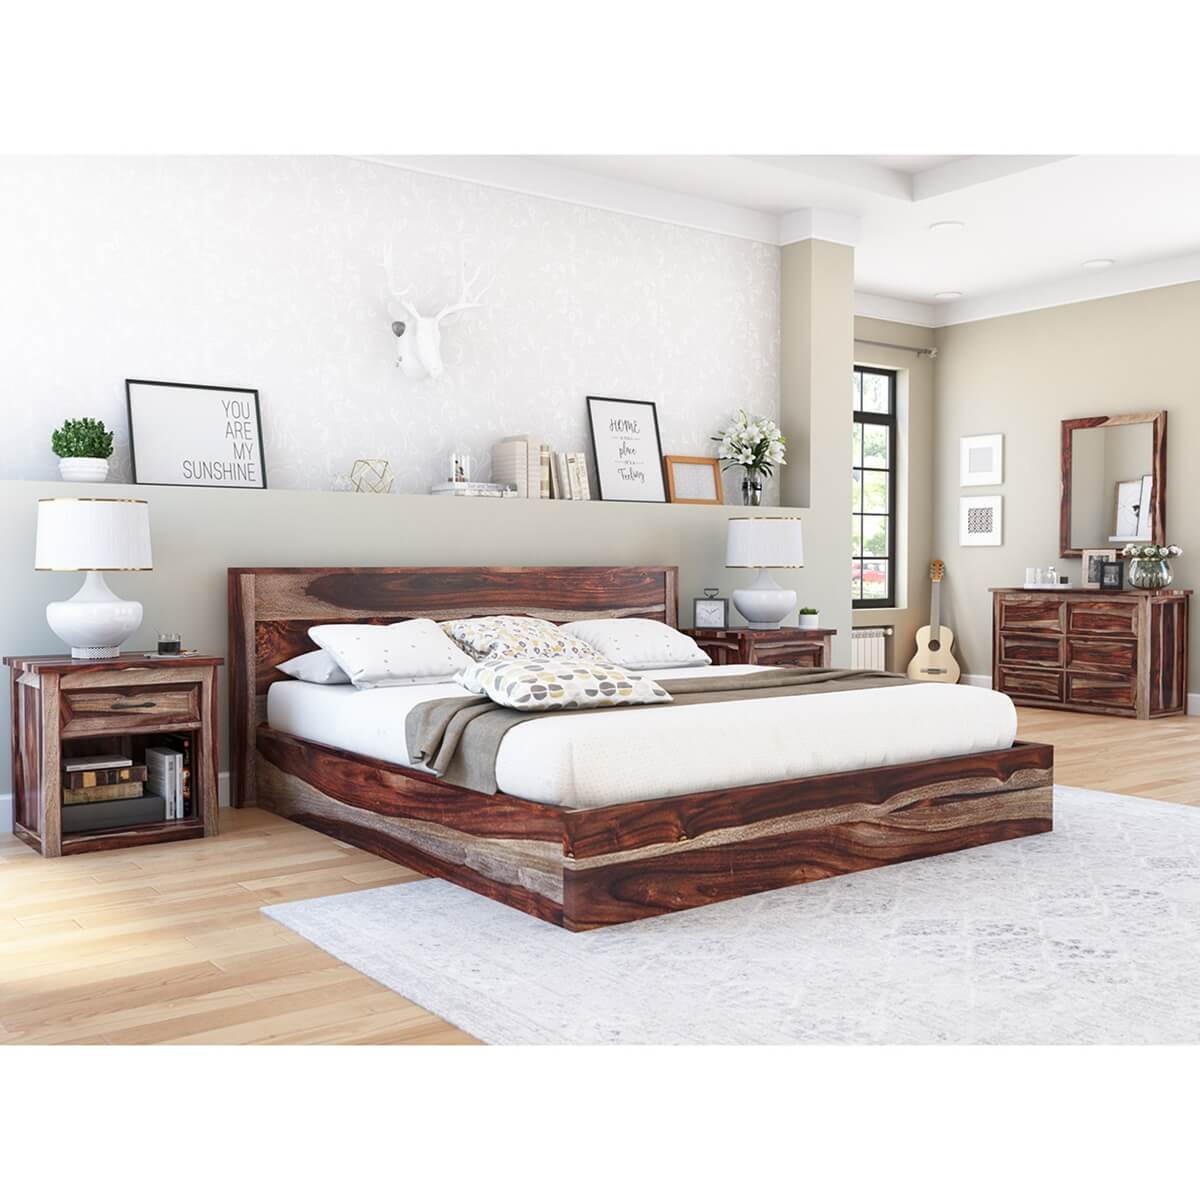 Jamaica Rustic Solid Wood 5 Piece King Size Bedroom Furniture Set